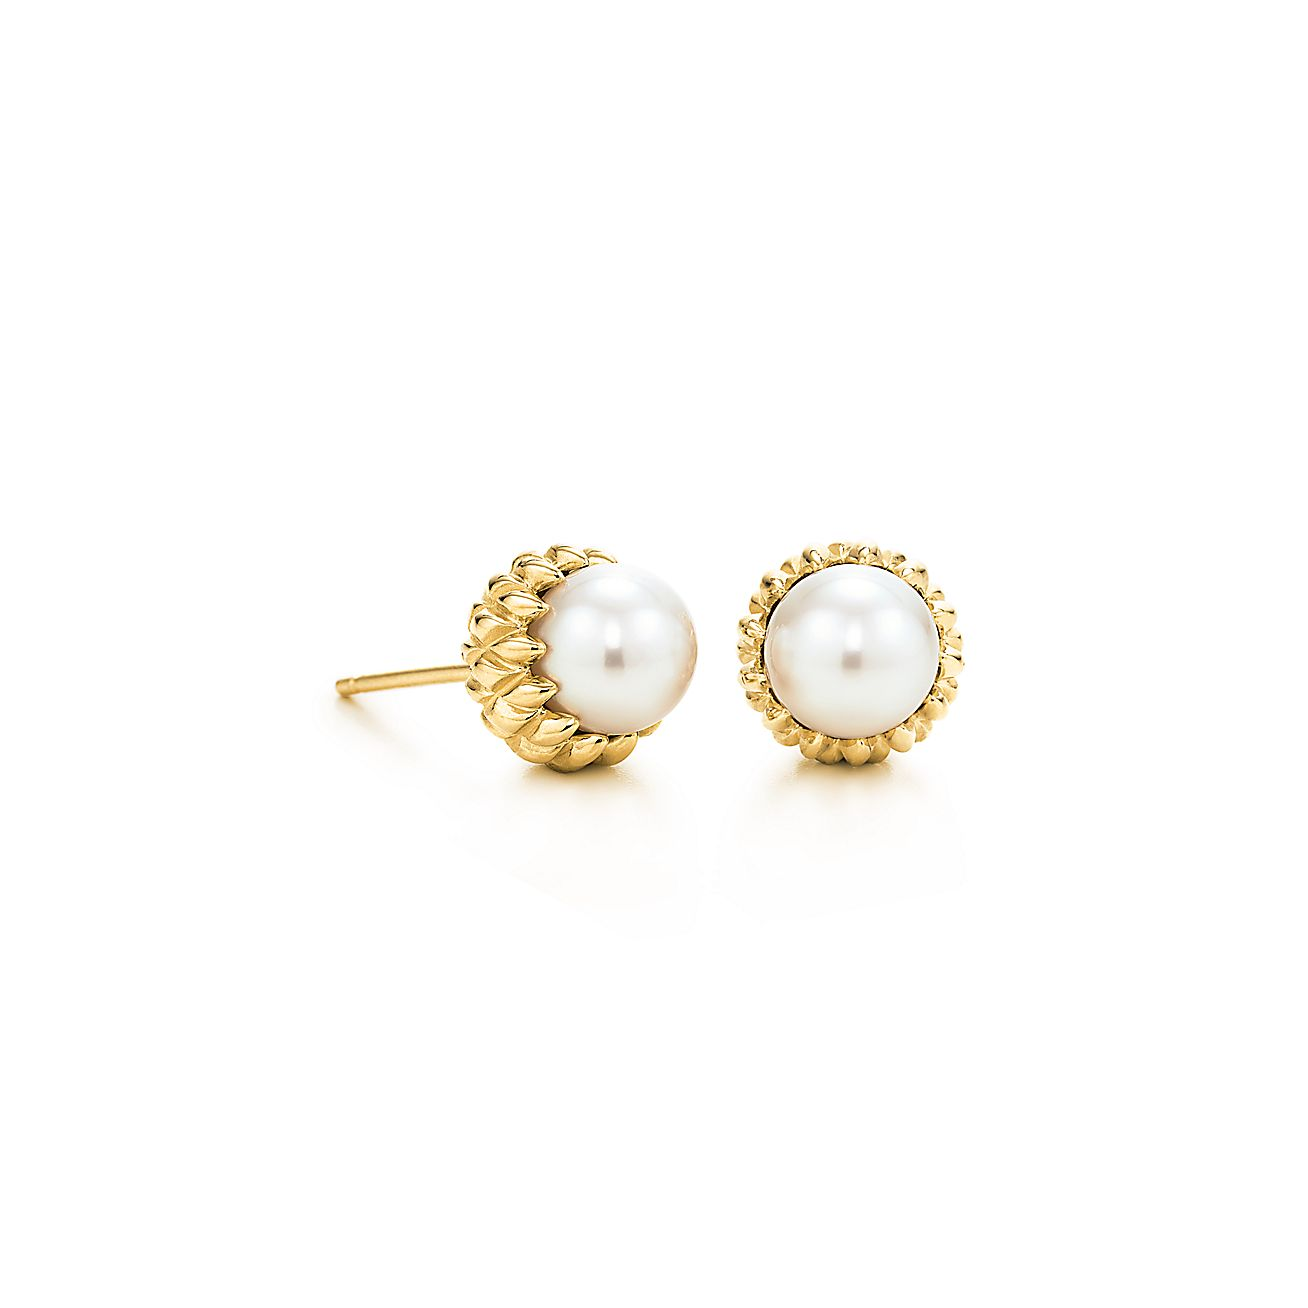 Schlumberger Acorn Earrings In 18k Gold With Akoya Pearls Tiffany Co